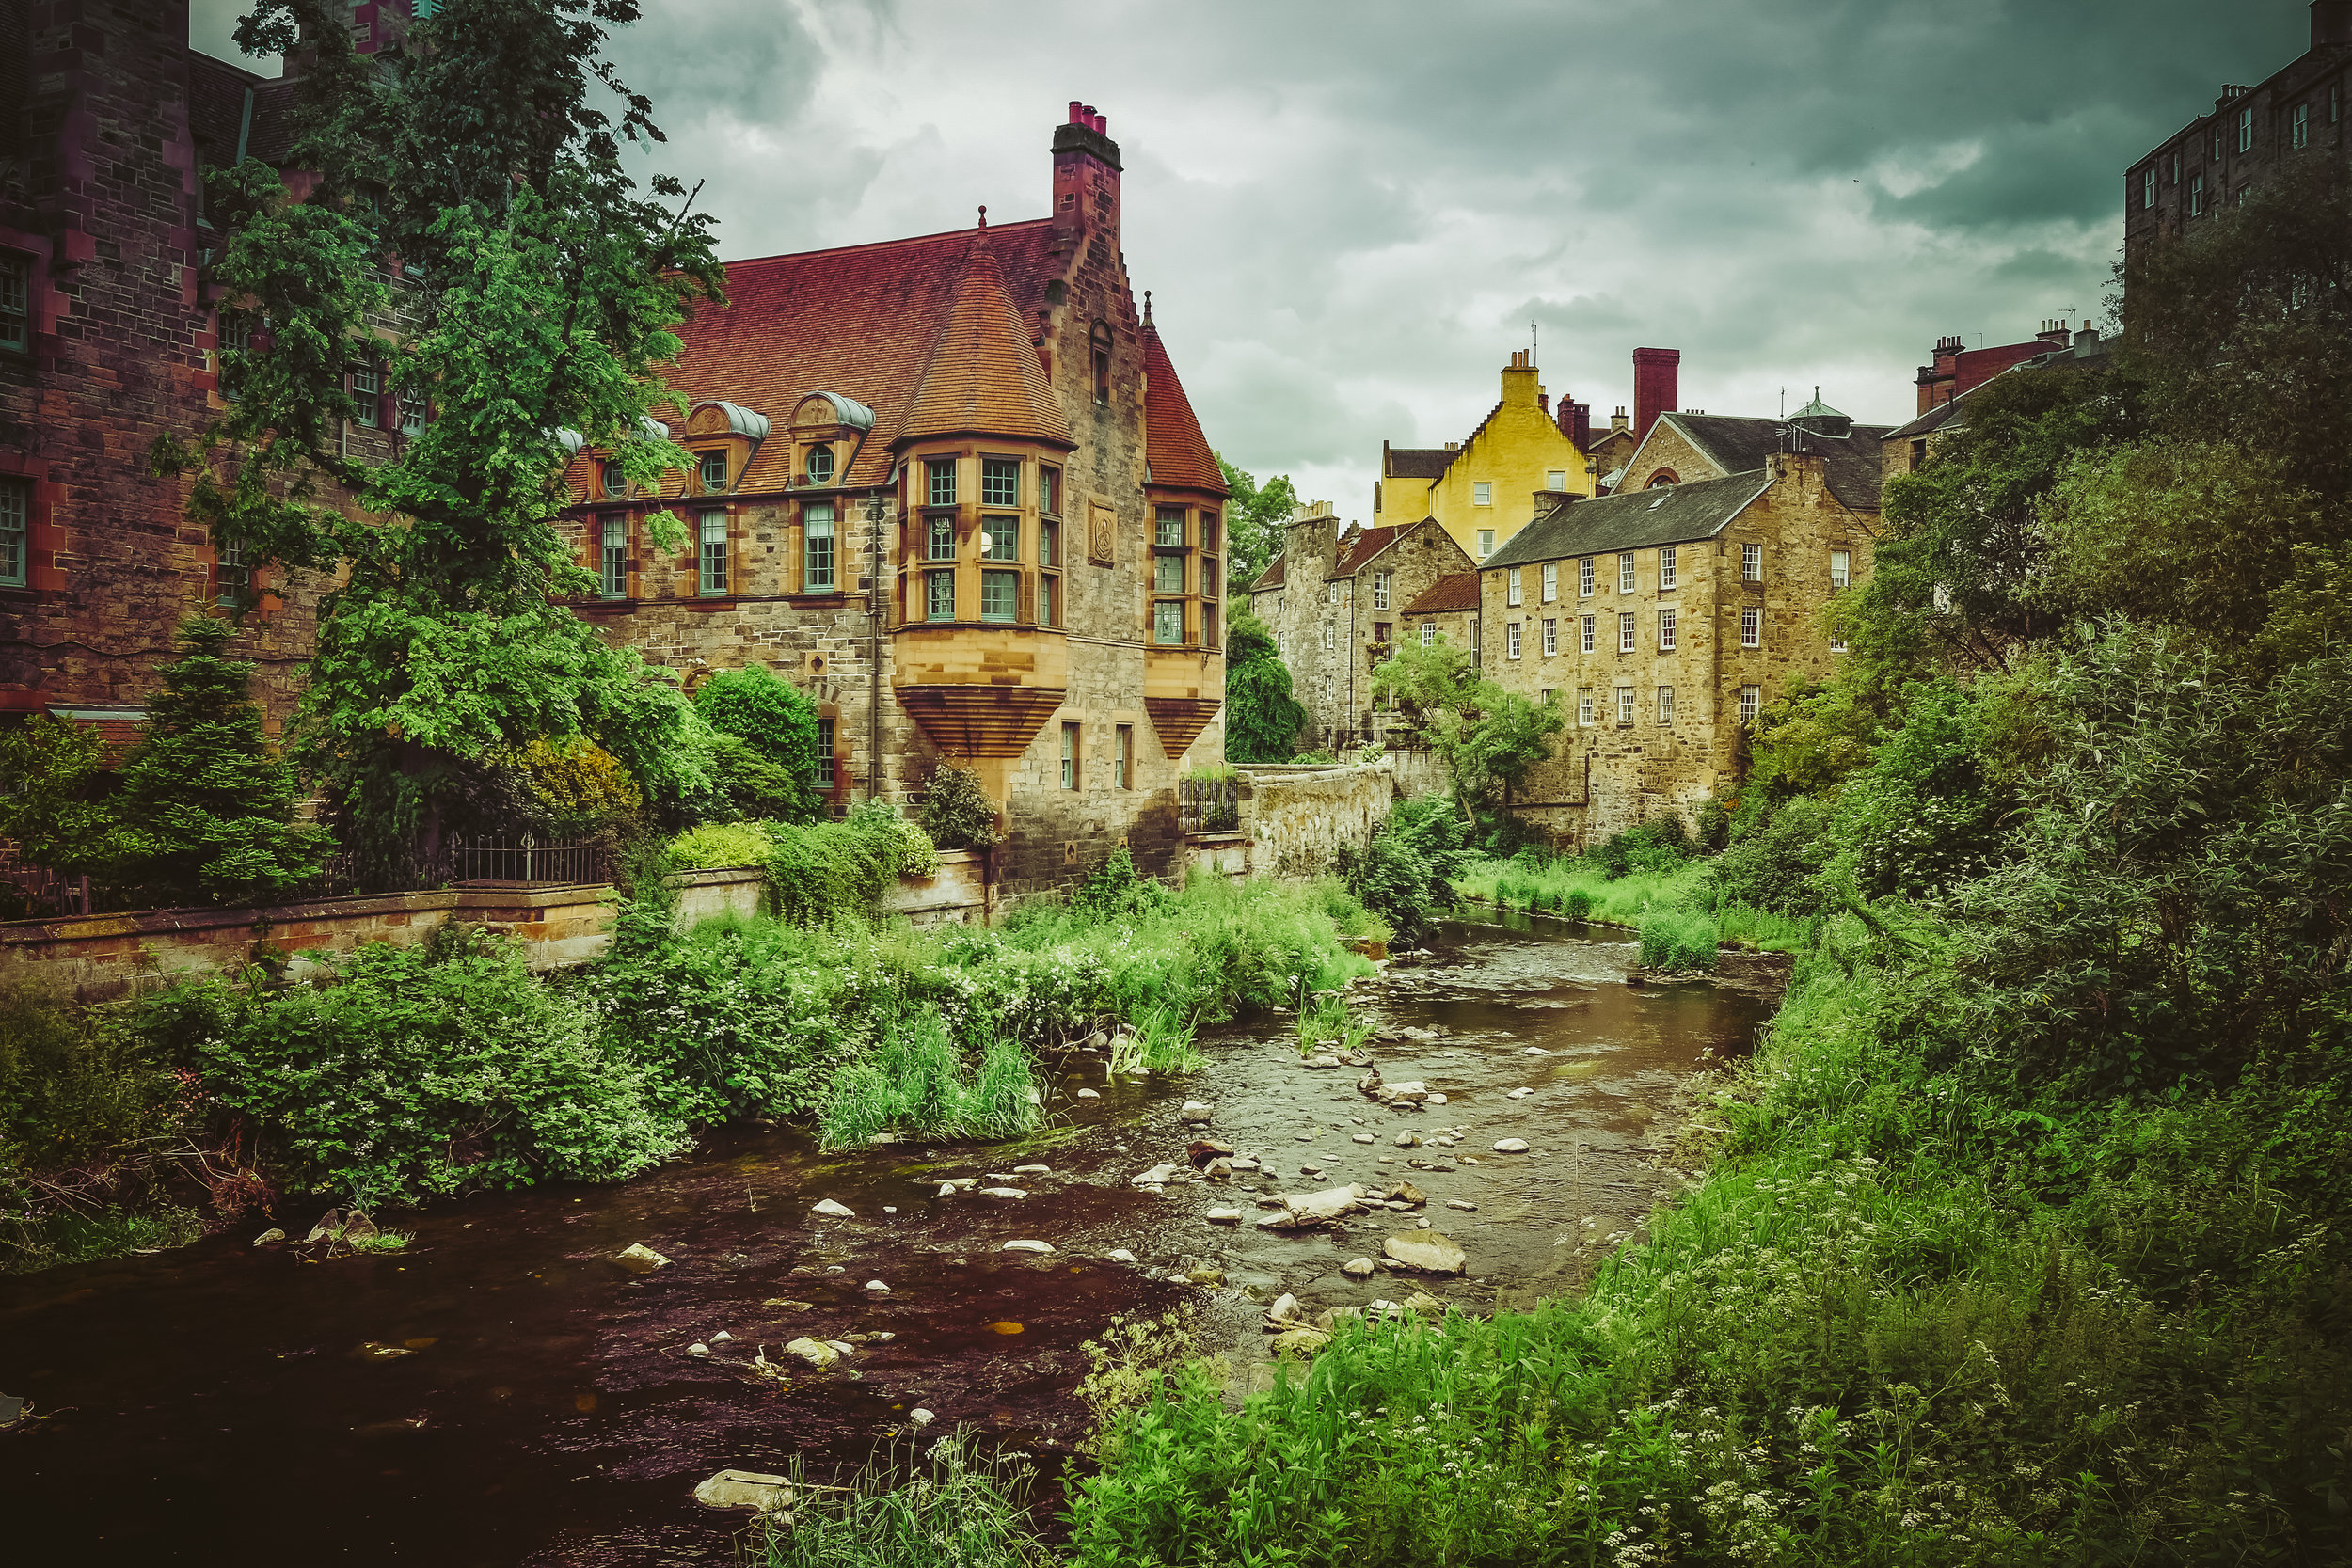 Dean Village, the most picturesque part of Scotland we saw that week. The Waters of Leith run through.